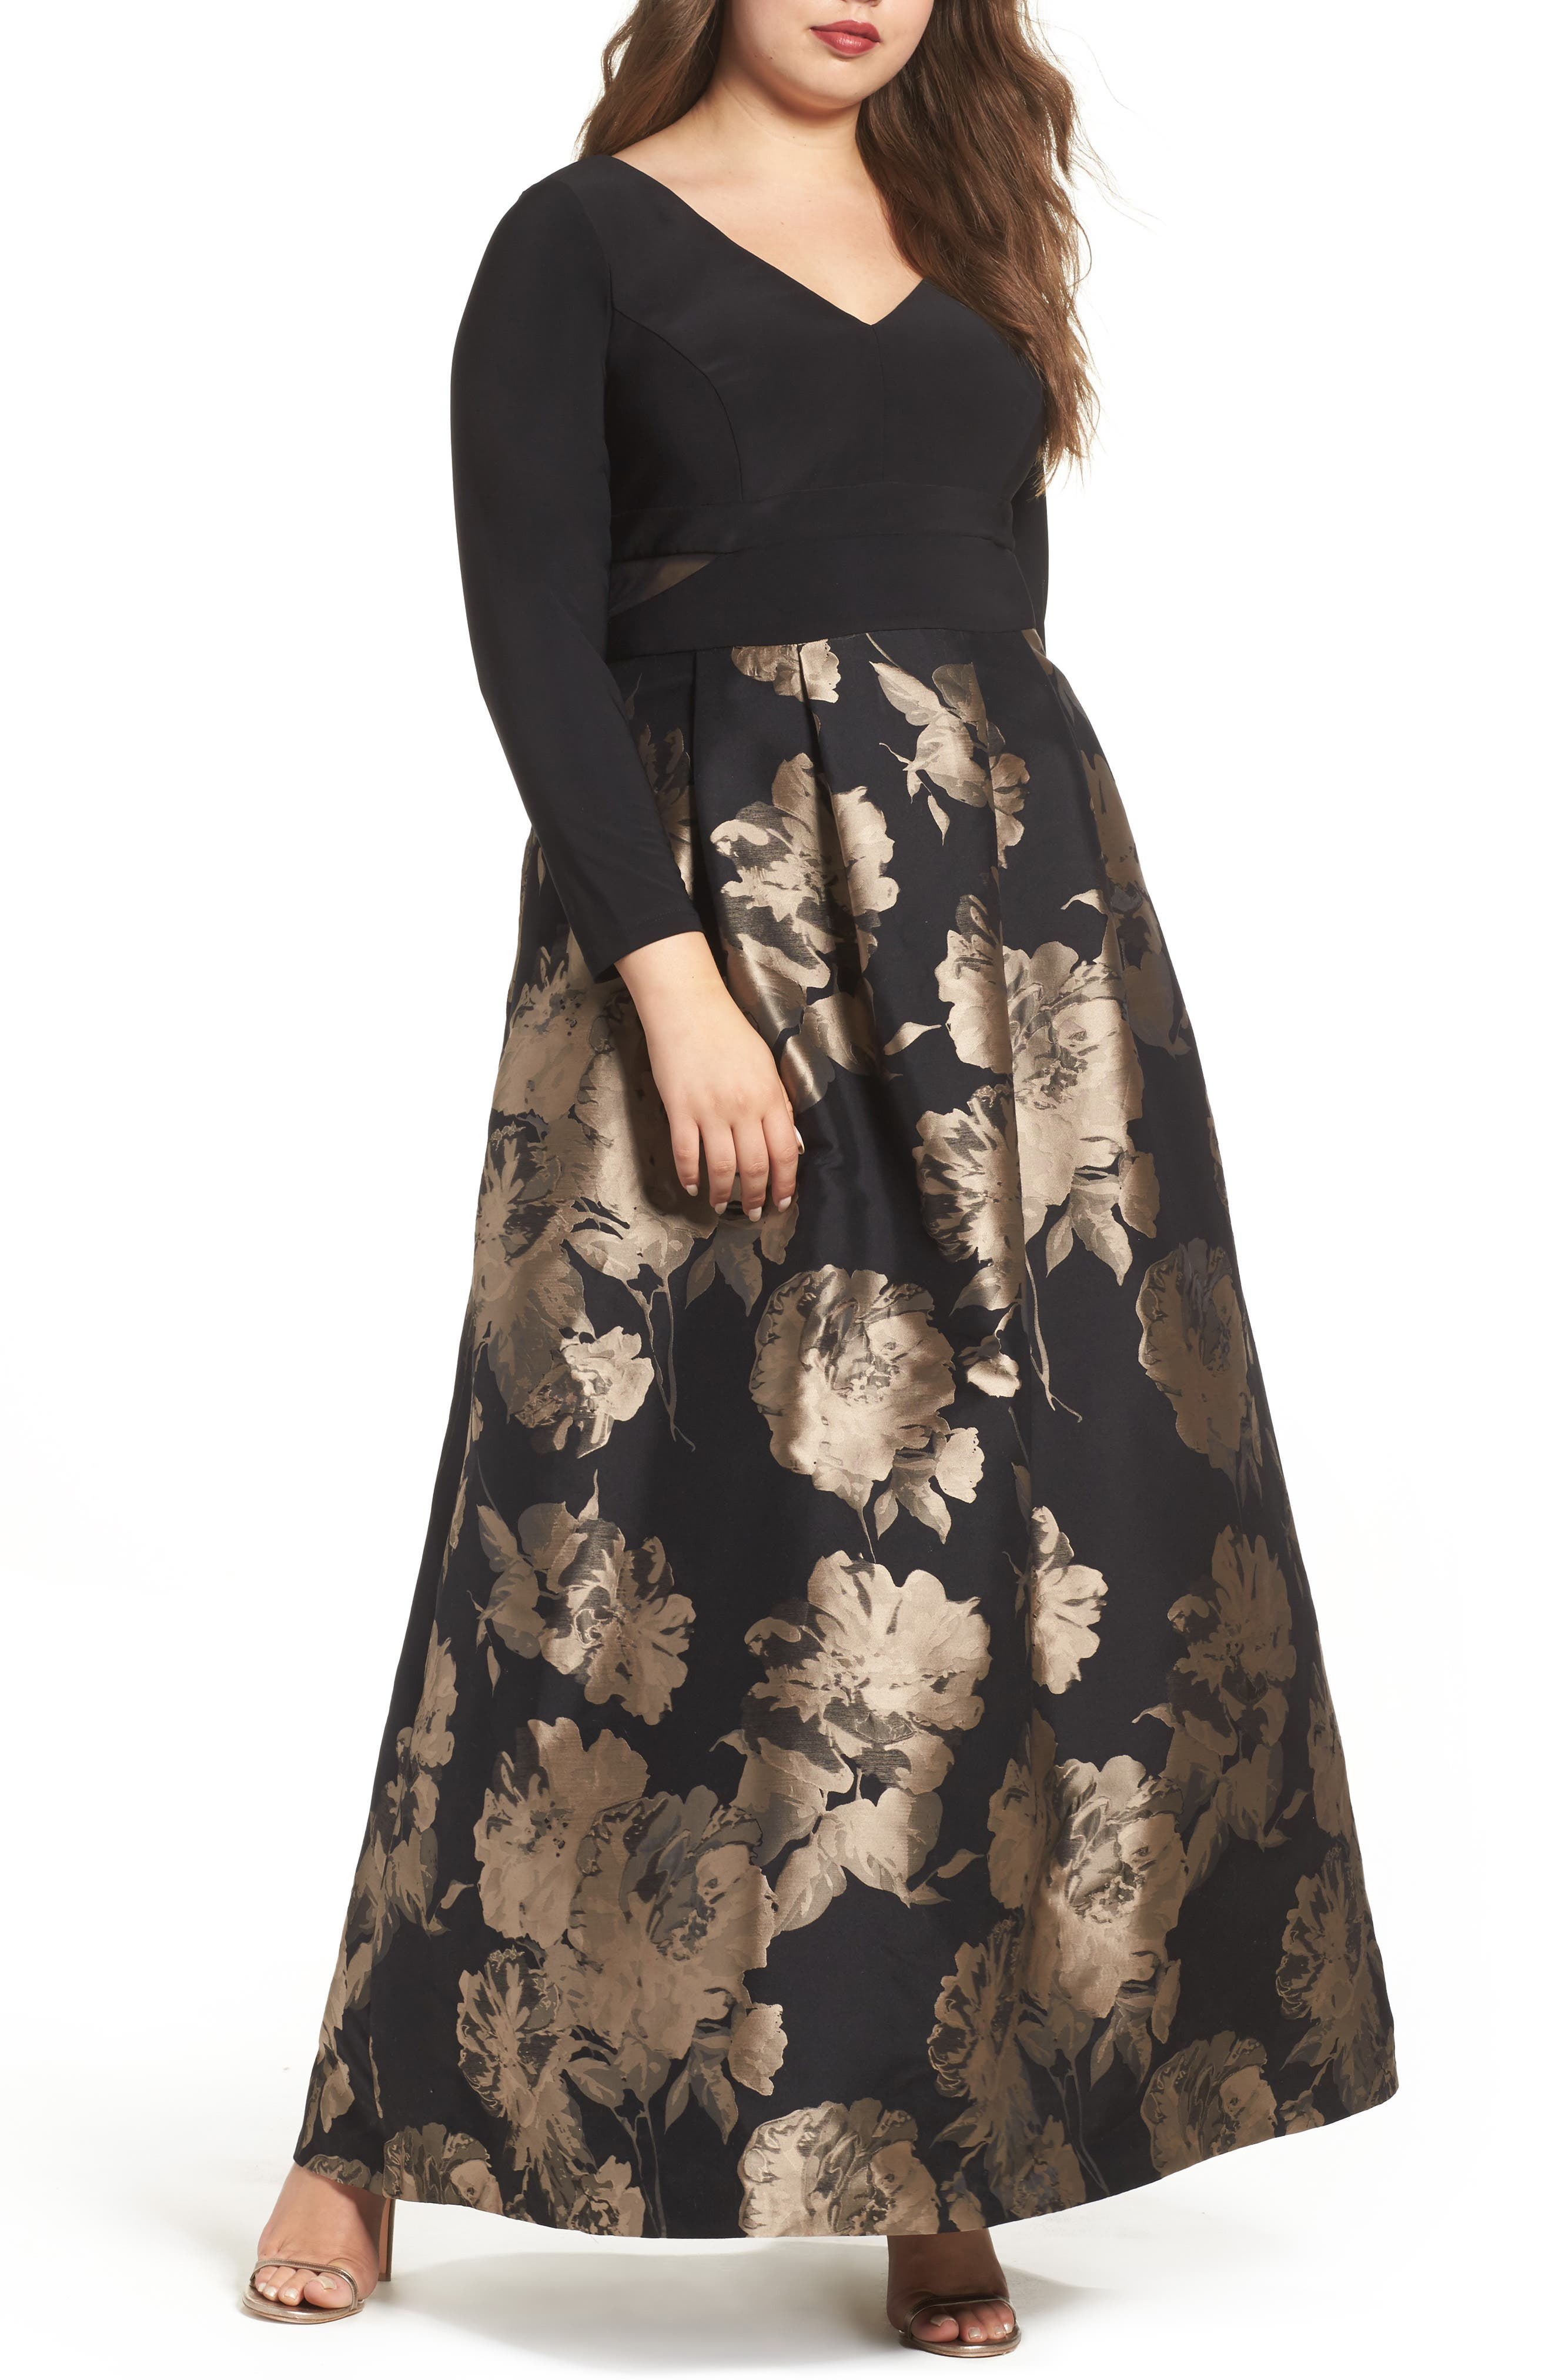 Xscape Mesh Inset Print Skirt Gown (Plus Size)